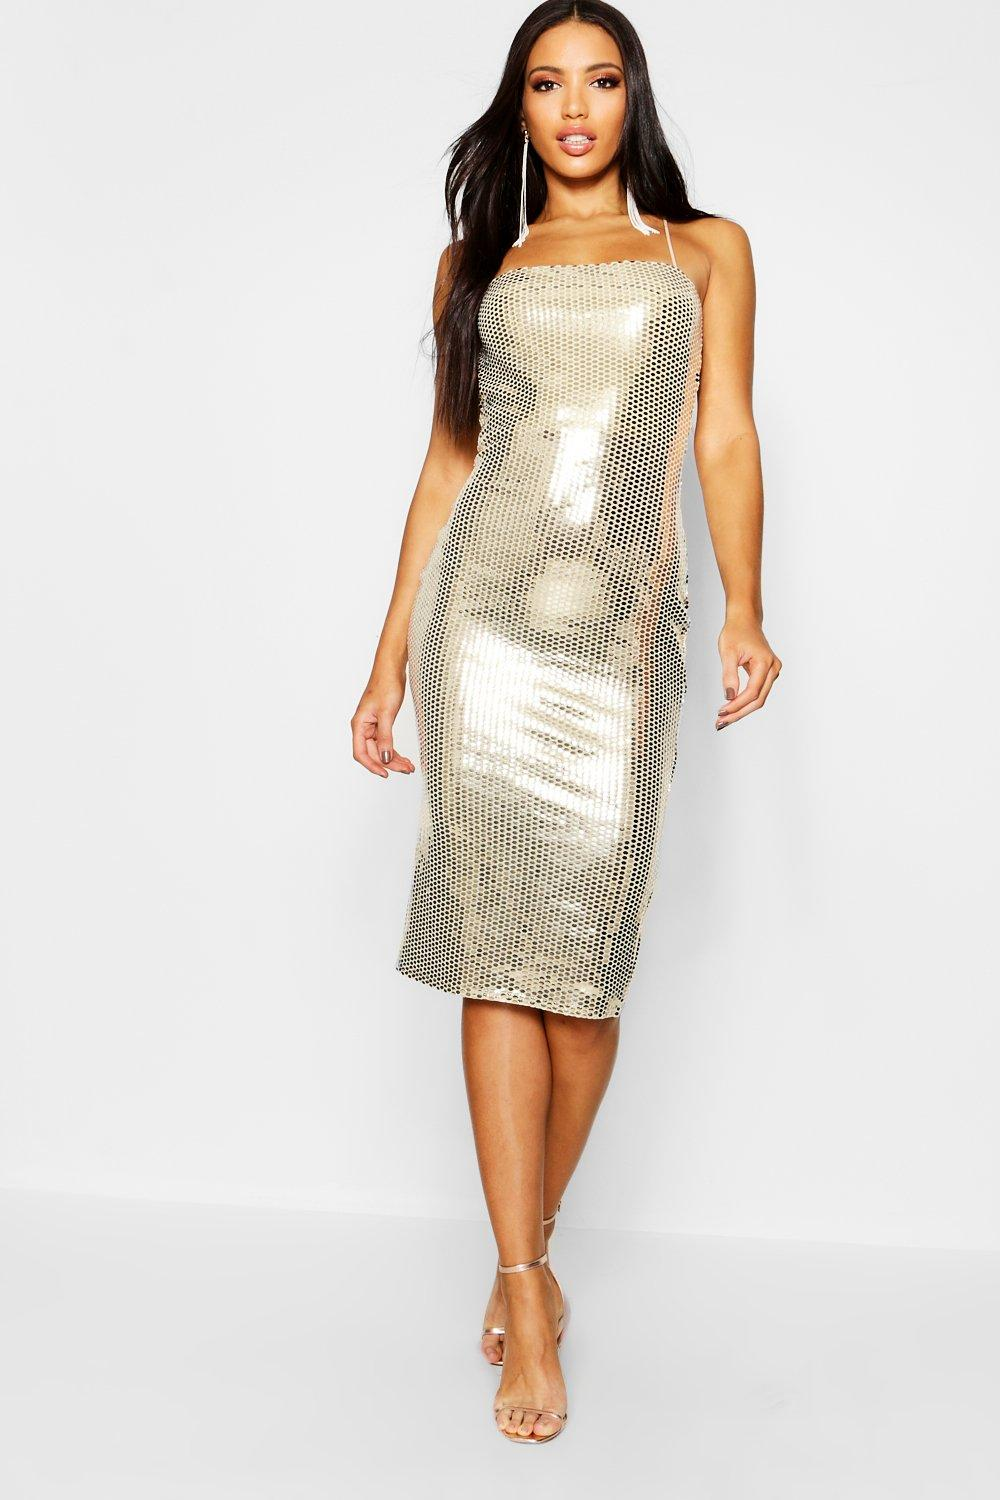 1dde015ac215 Womens Gold Sequin Square Neck Strappy Back Midi Dress. Hover to zoom